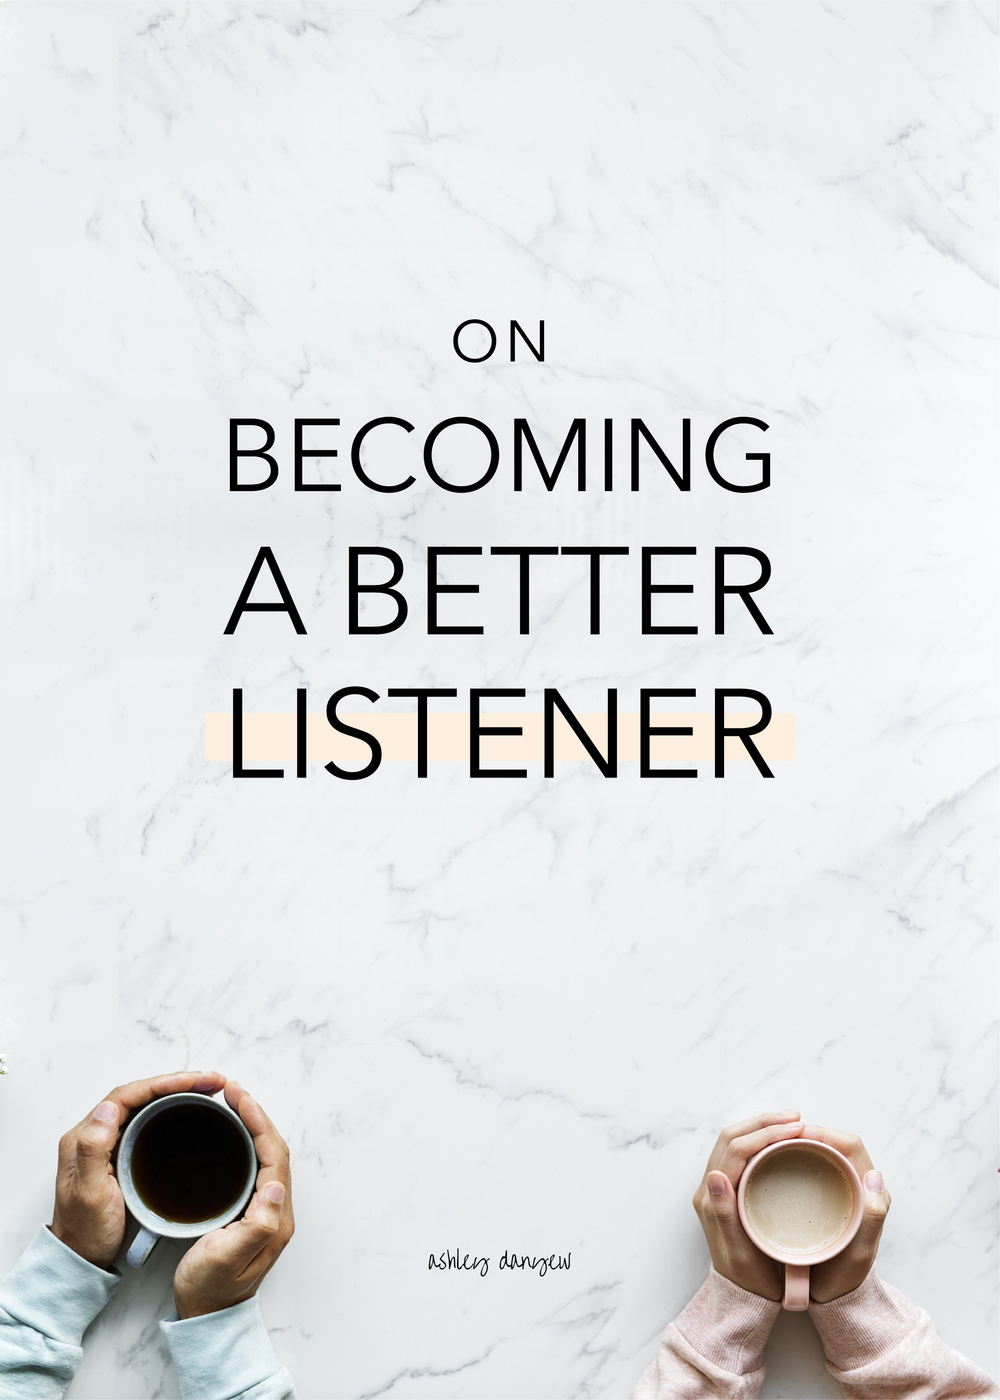 On Becoming a Better Listener